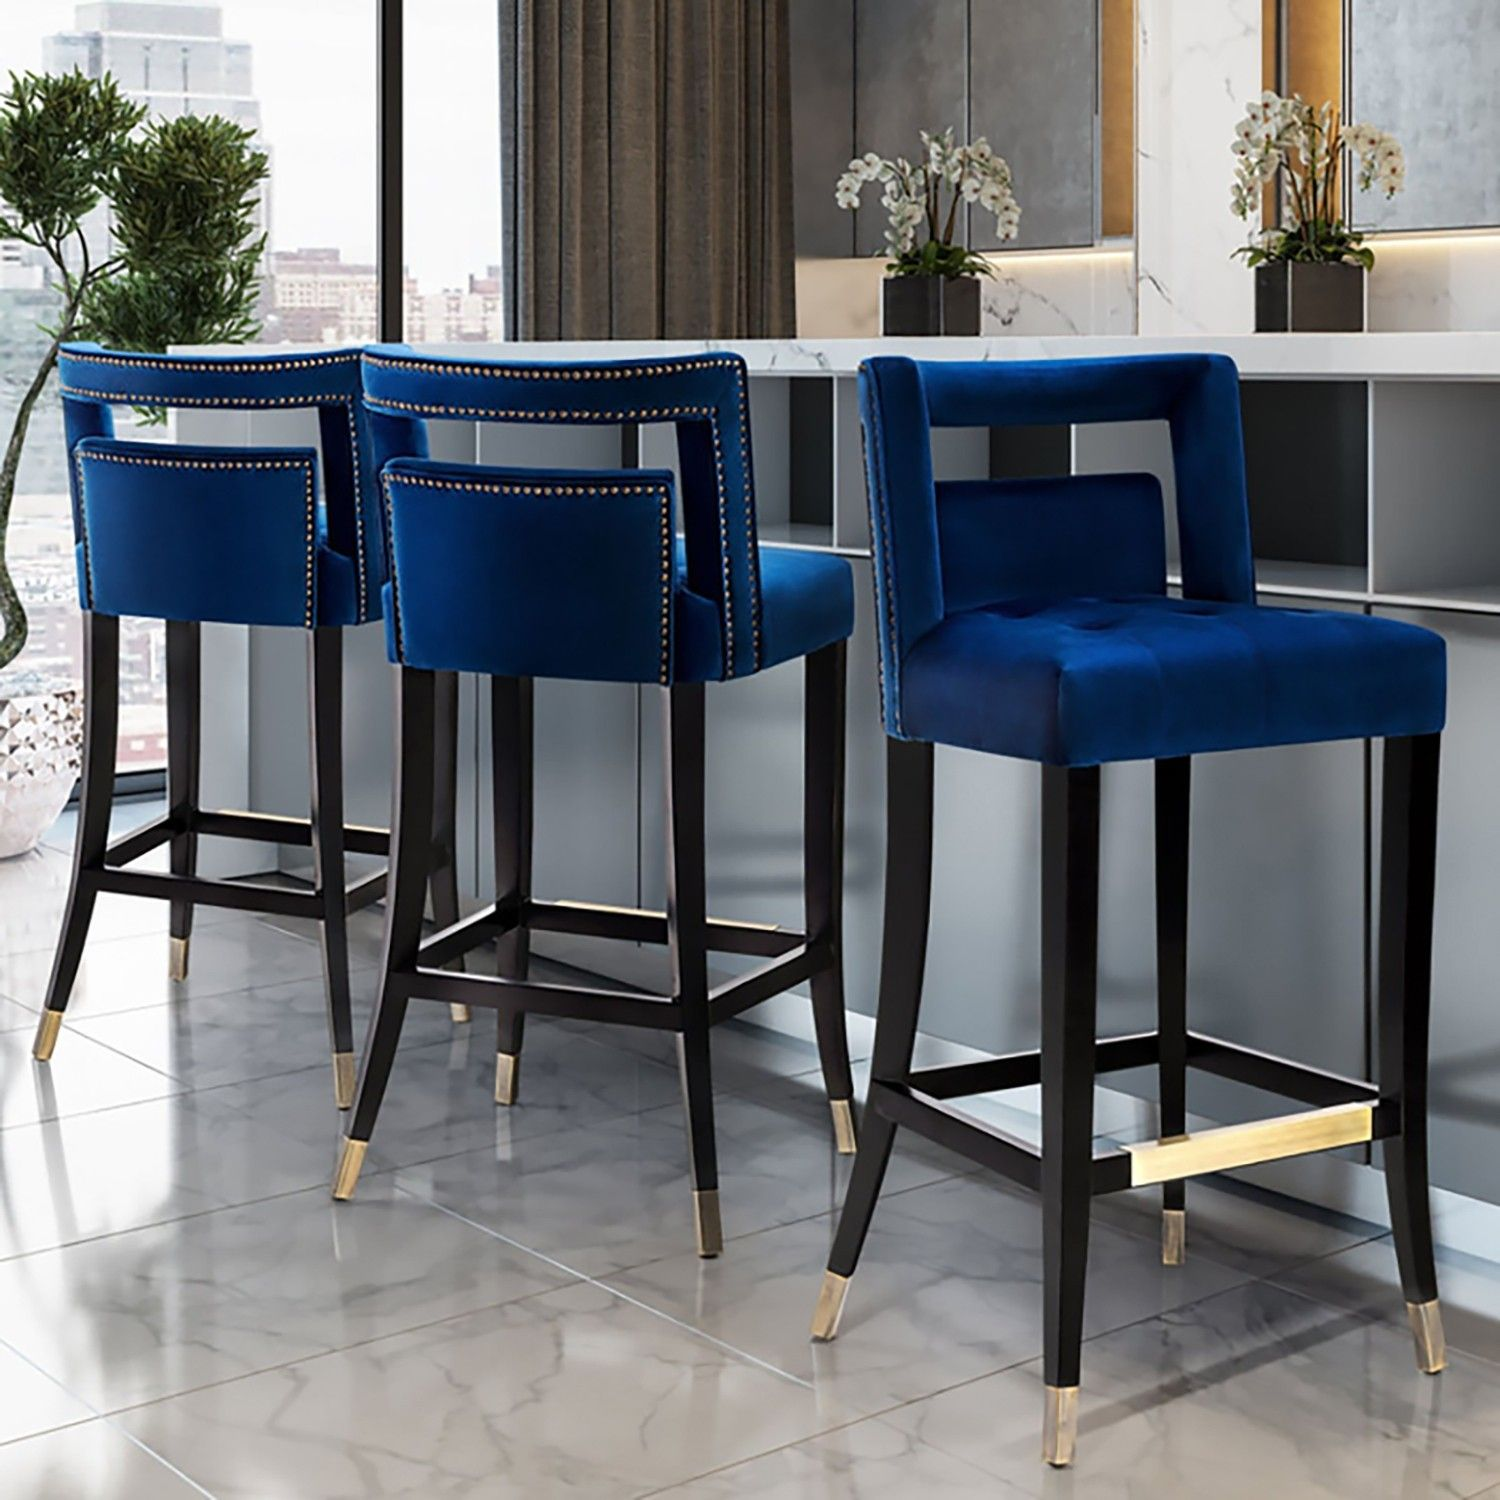 Pin on AFFORDABLE Kitchen Bar Stools